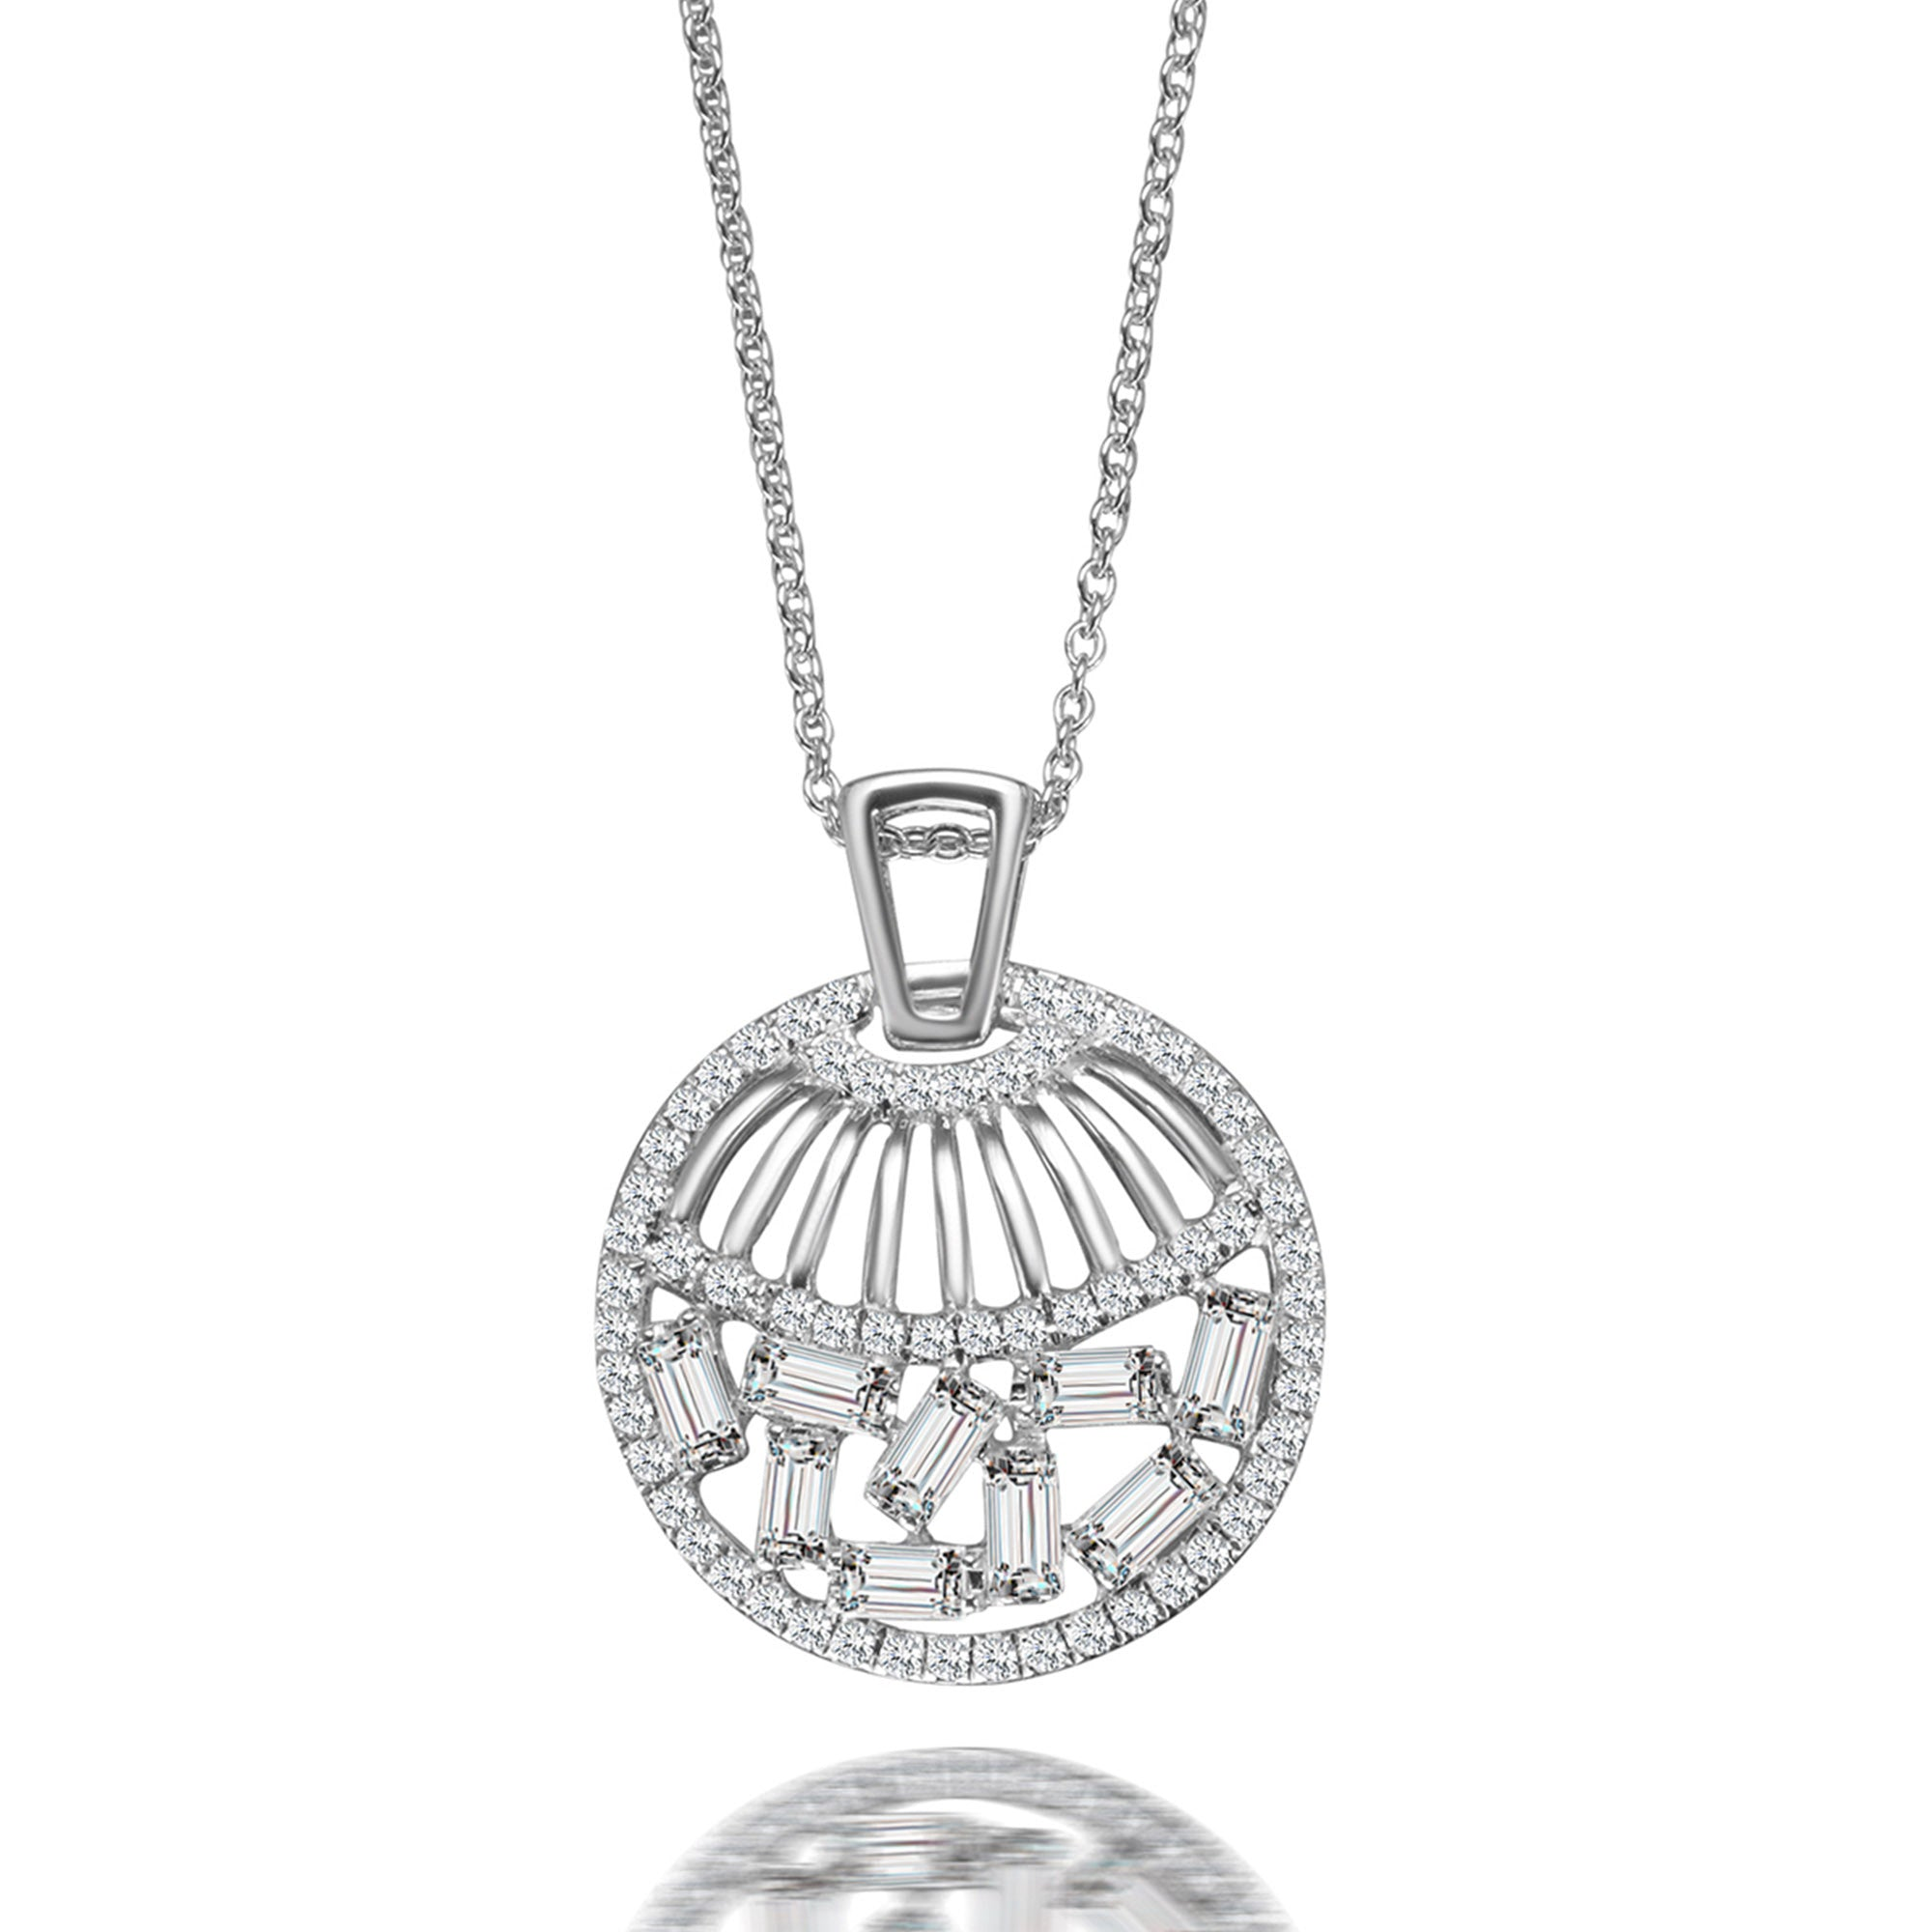 estate necklaces jewelry diamond pendant necklace platinum fullsizerender